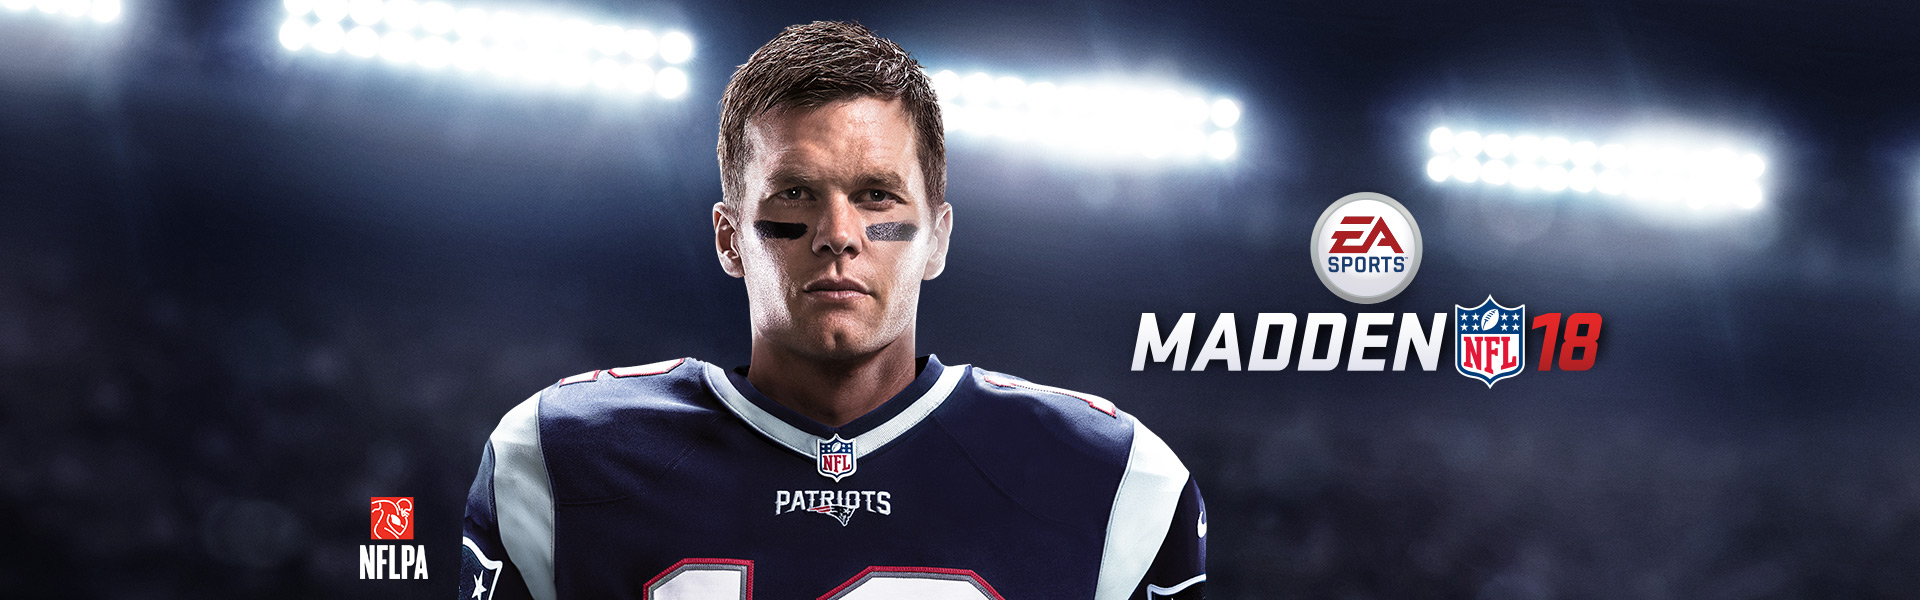 Tom Brady i Patriots-uniform